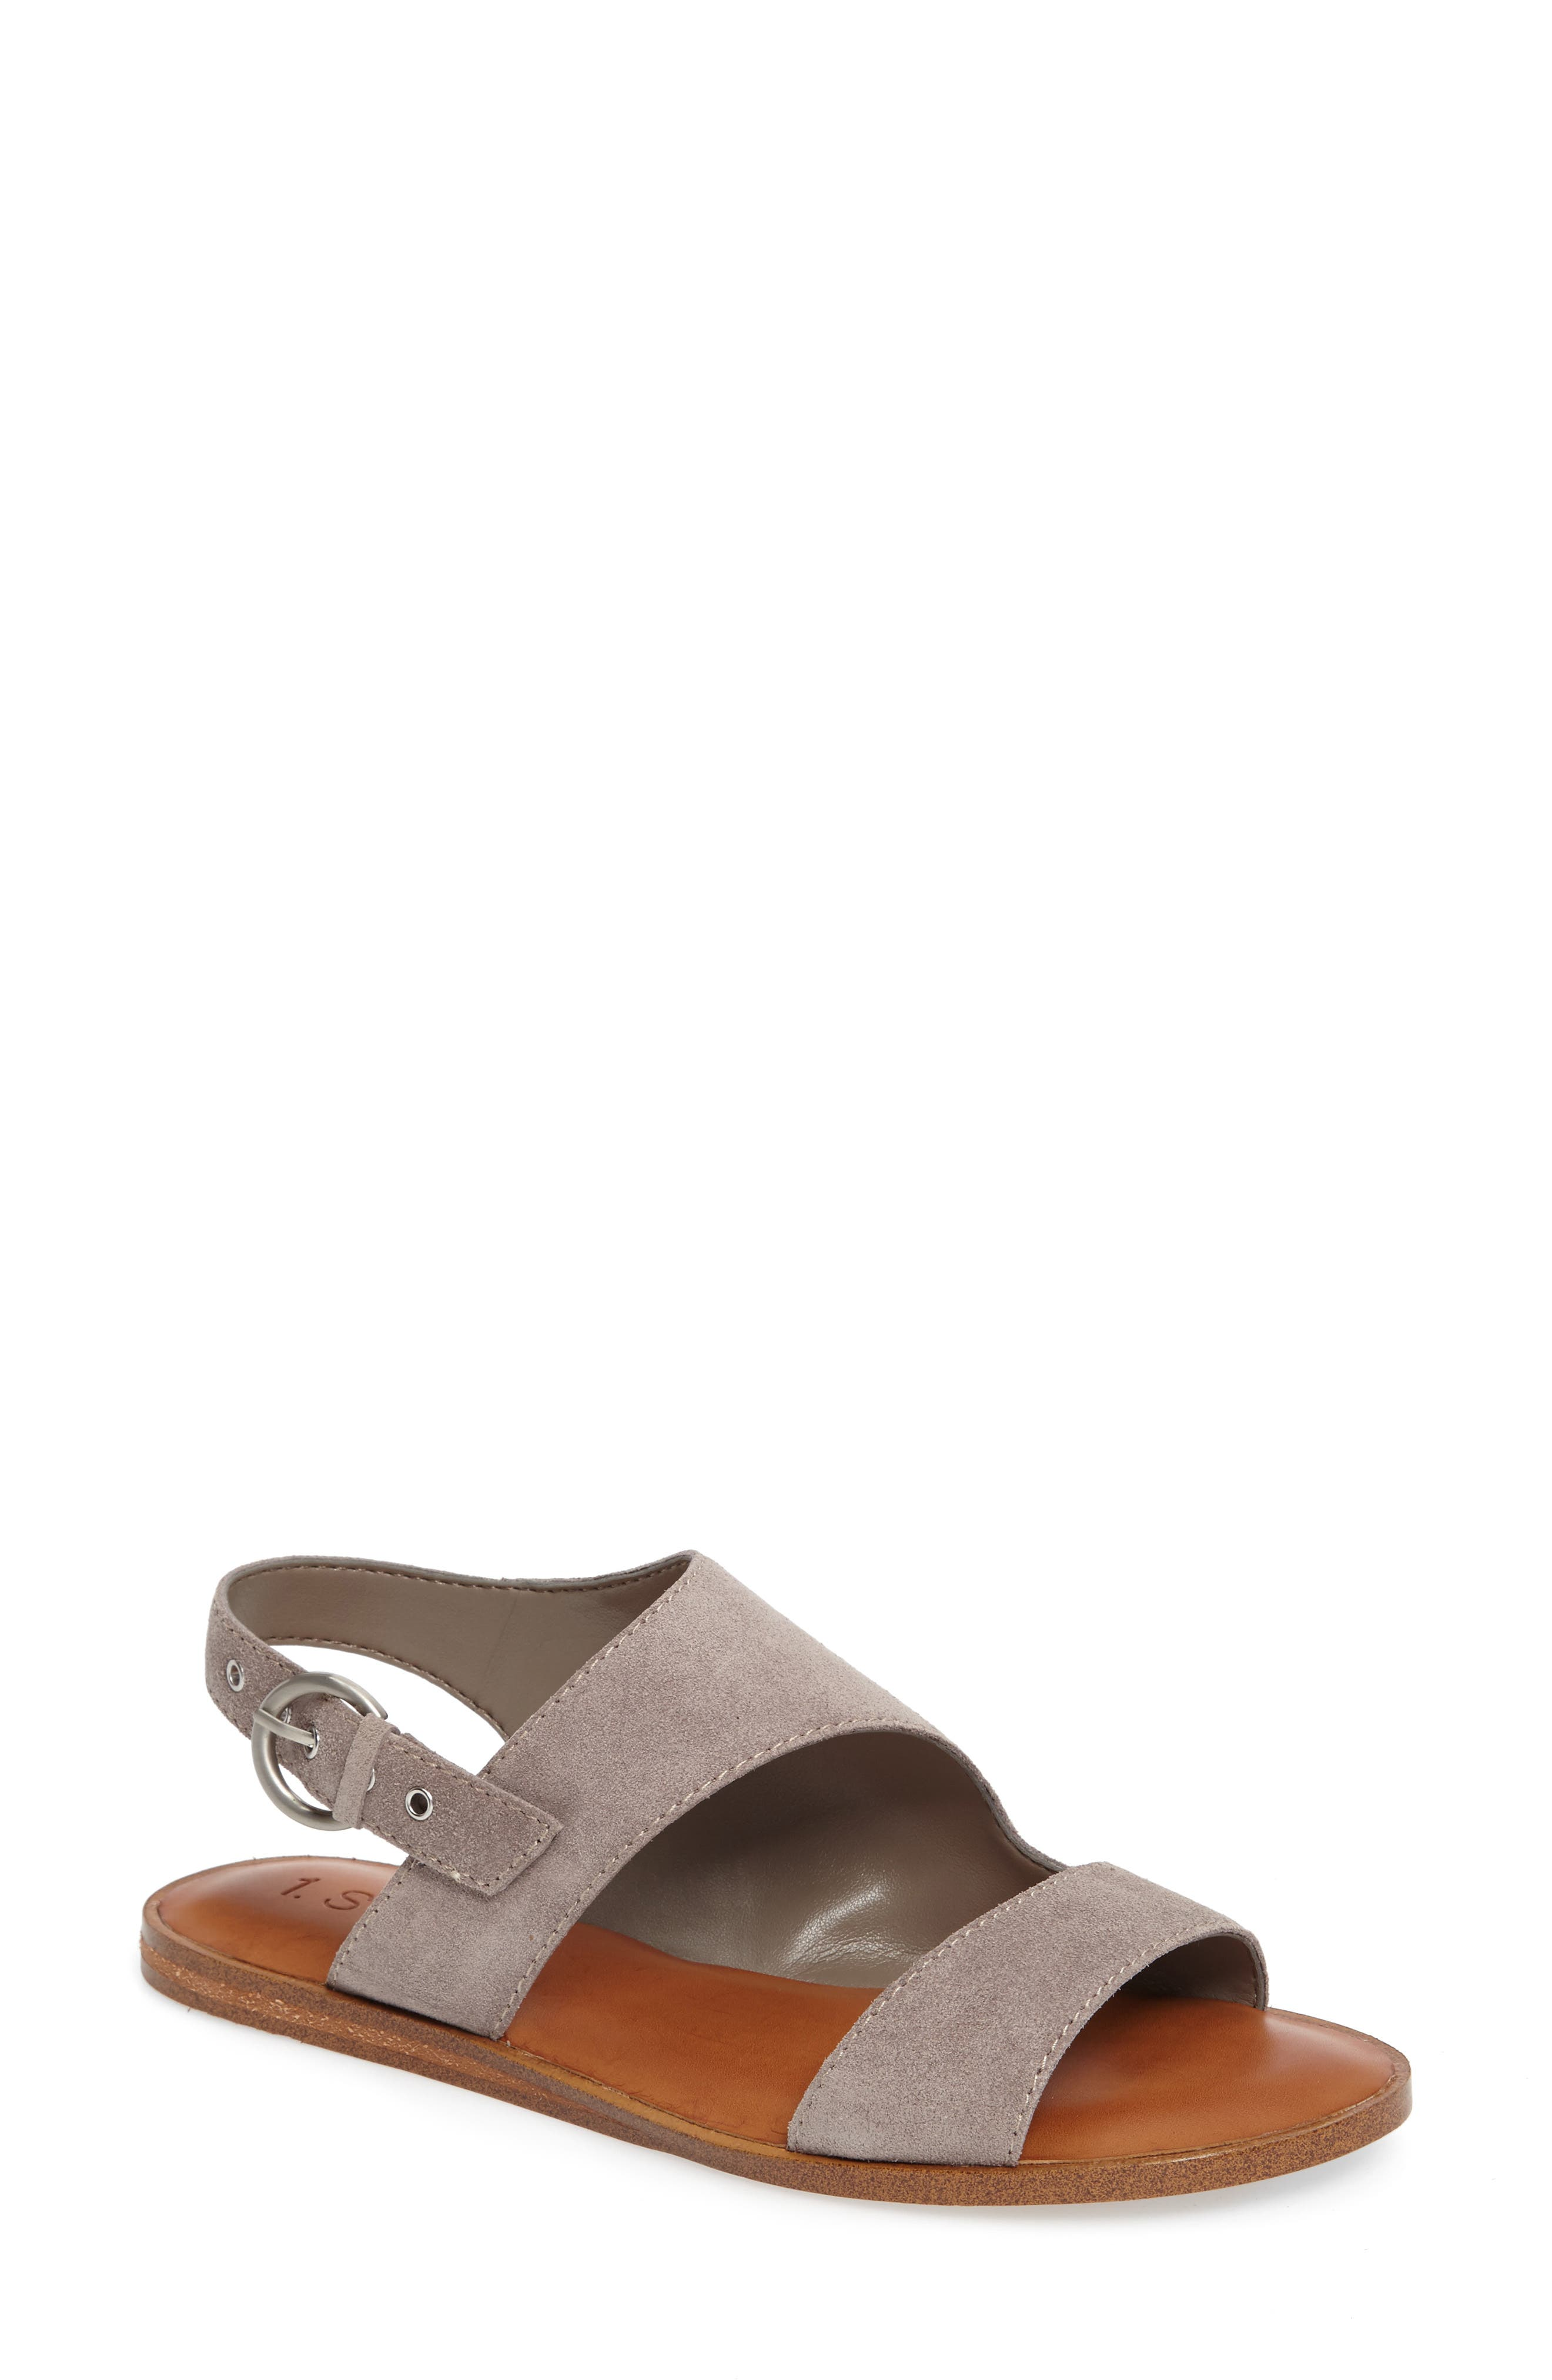 Alternate Image 1 Selected - 1.STATE Calen Sandal (Women)